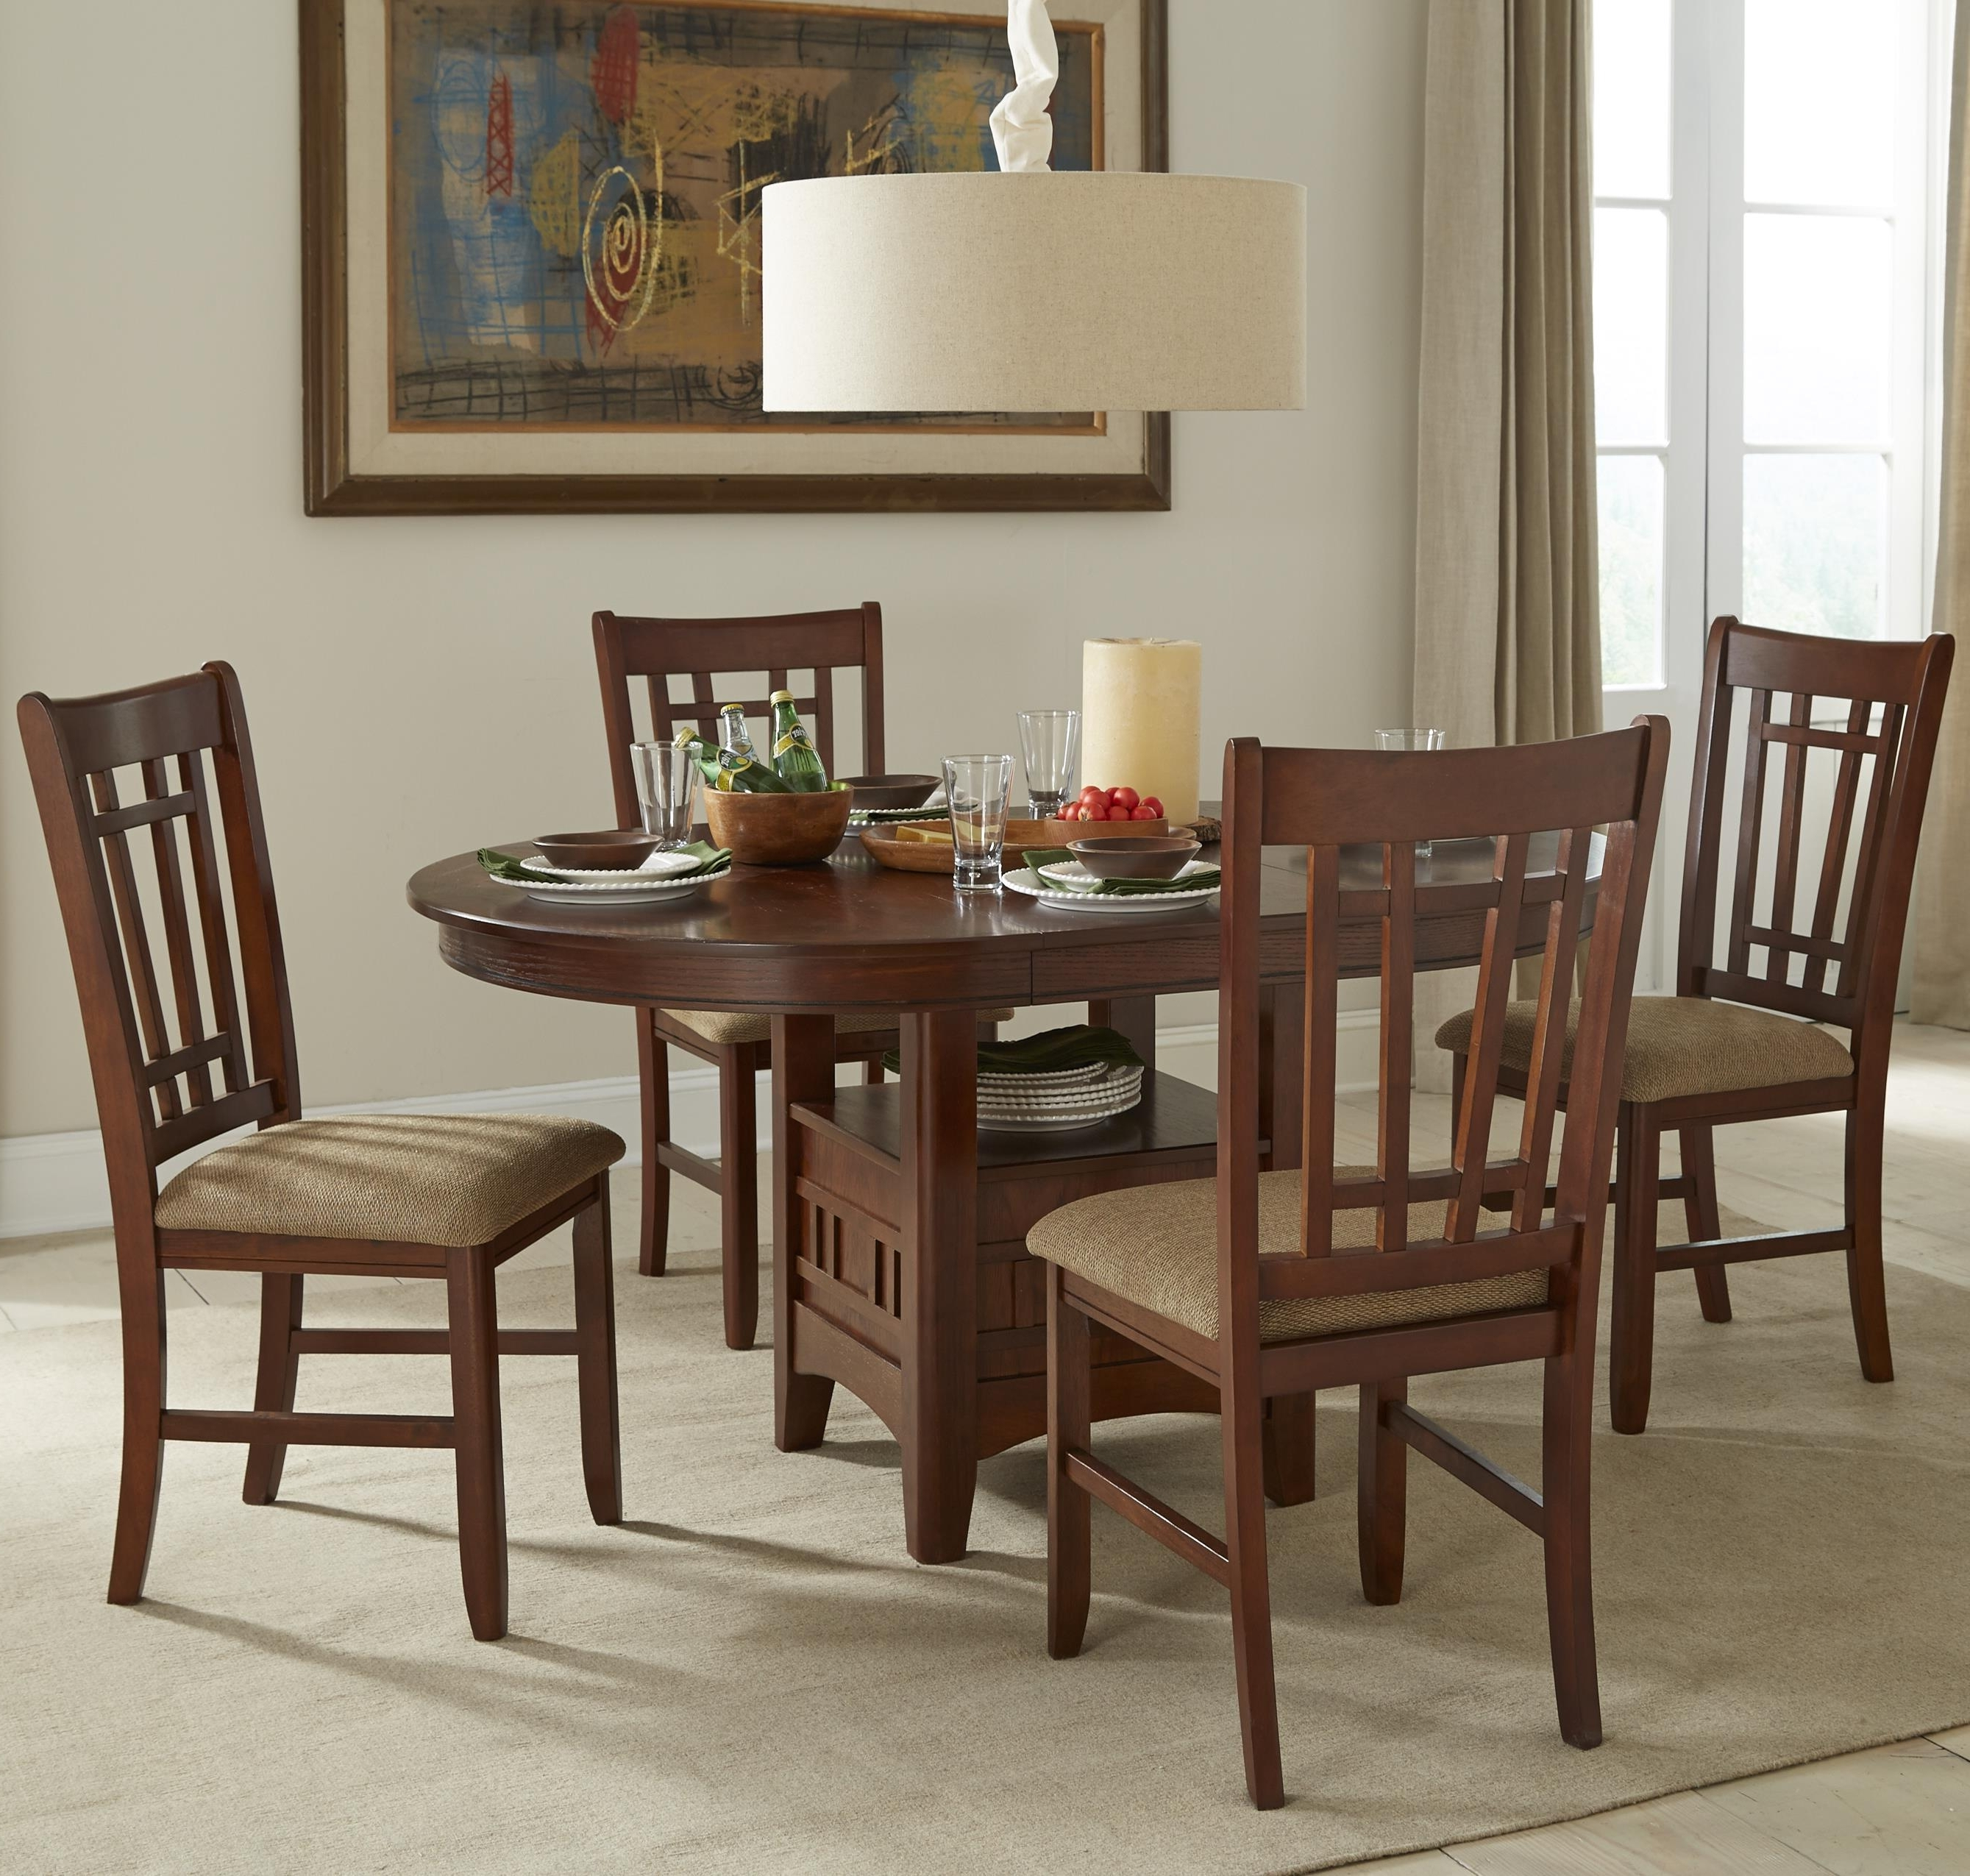 Best And Newest Dining Table Chair Sets Intended For Intercon Mission Casuals Oval Dining Table Set With Cushioned Side (View 3 of 25)